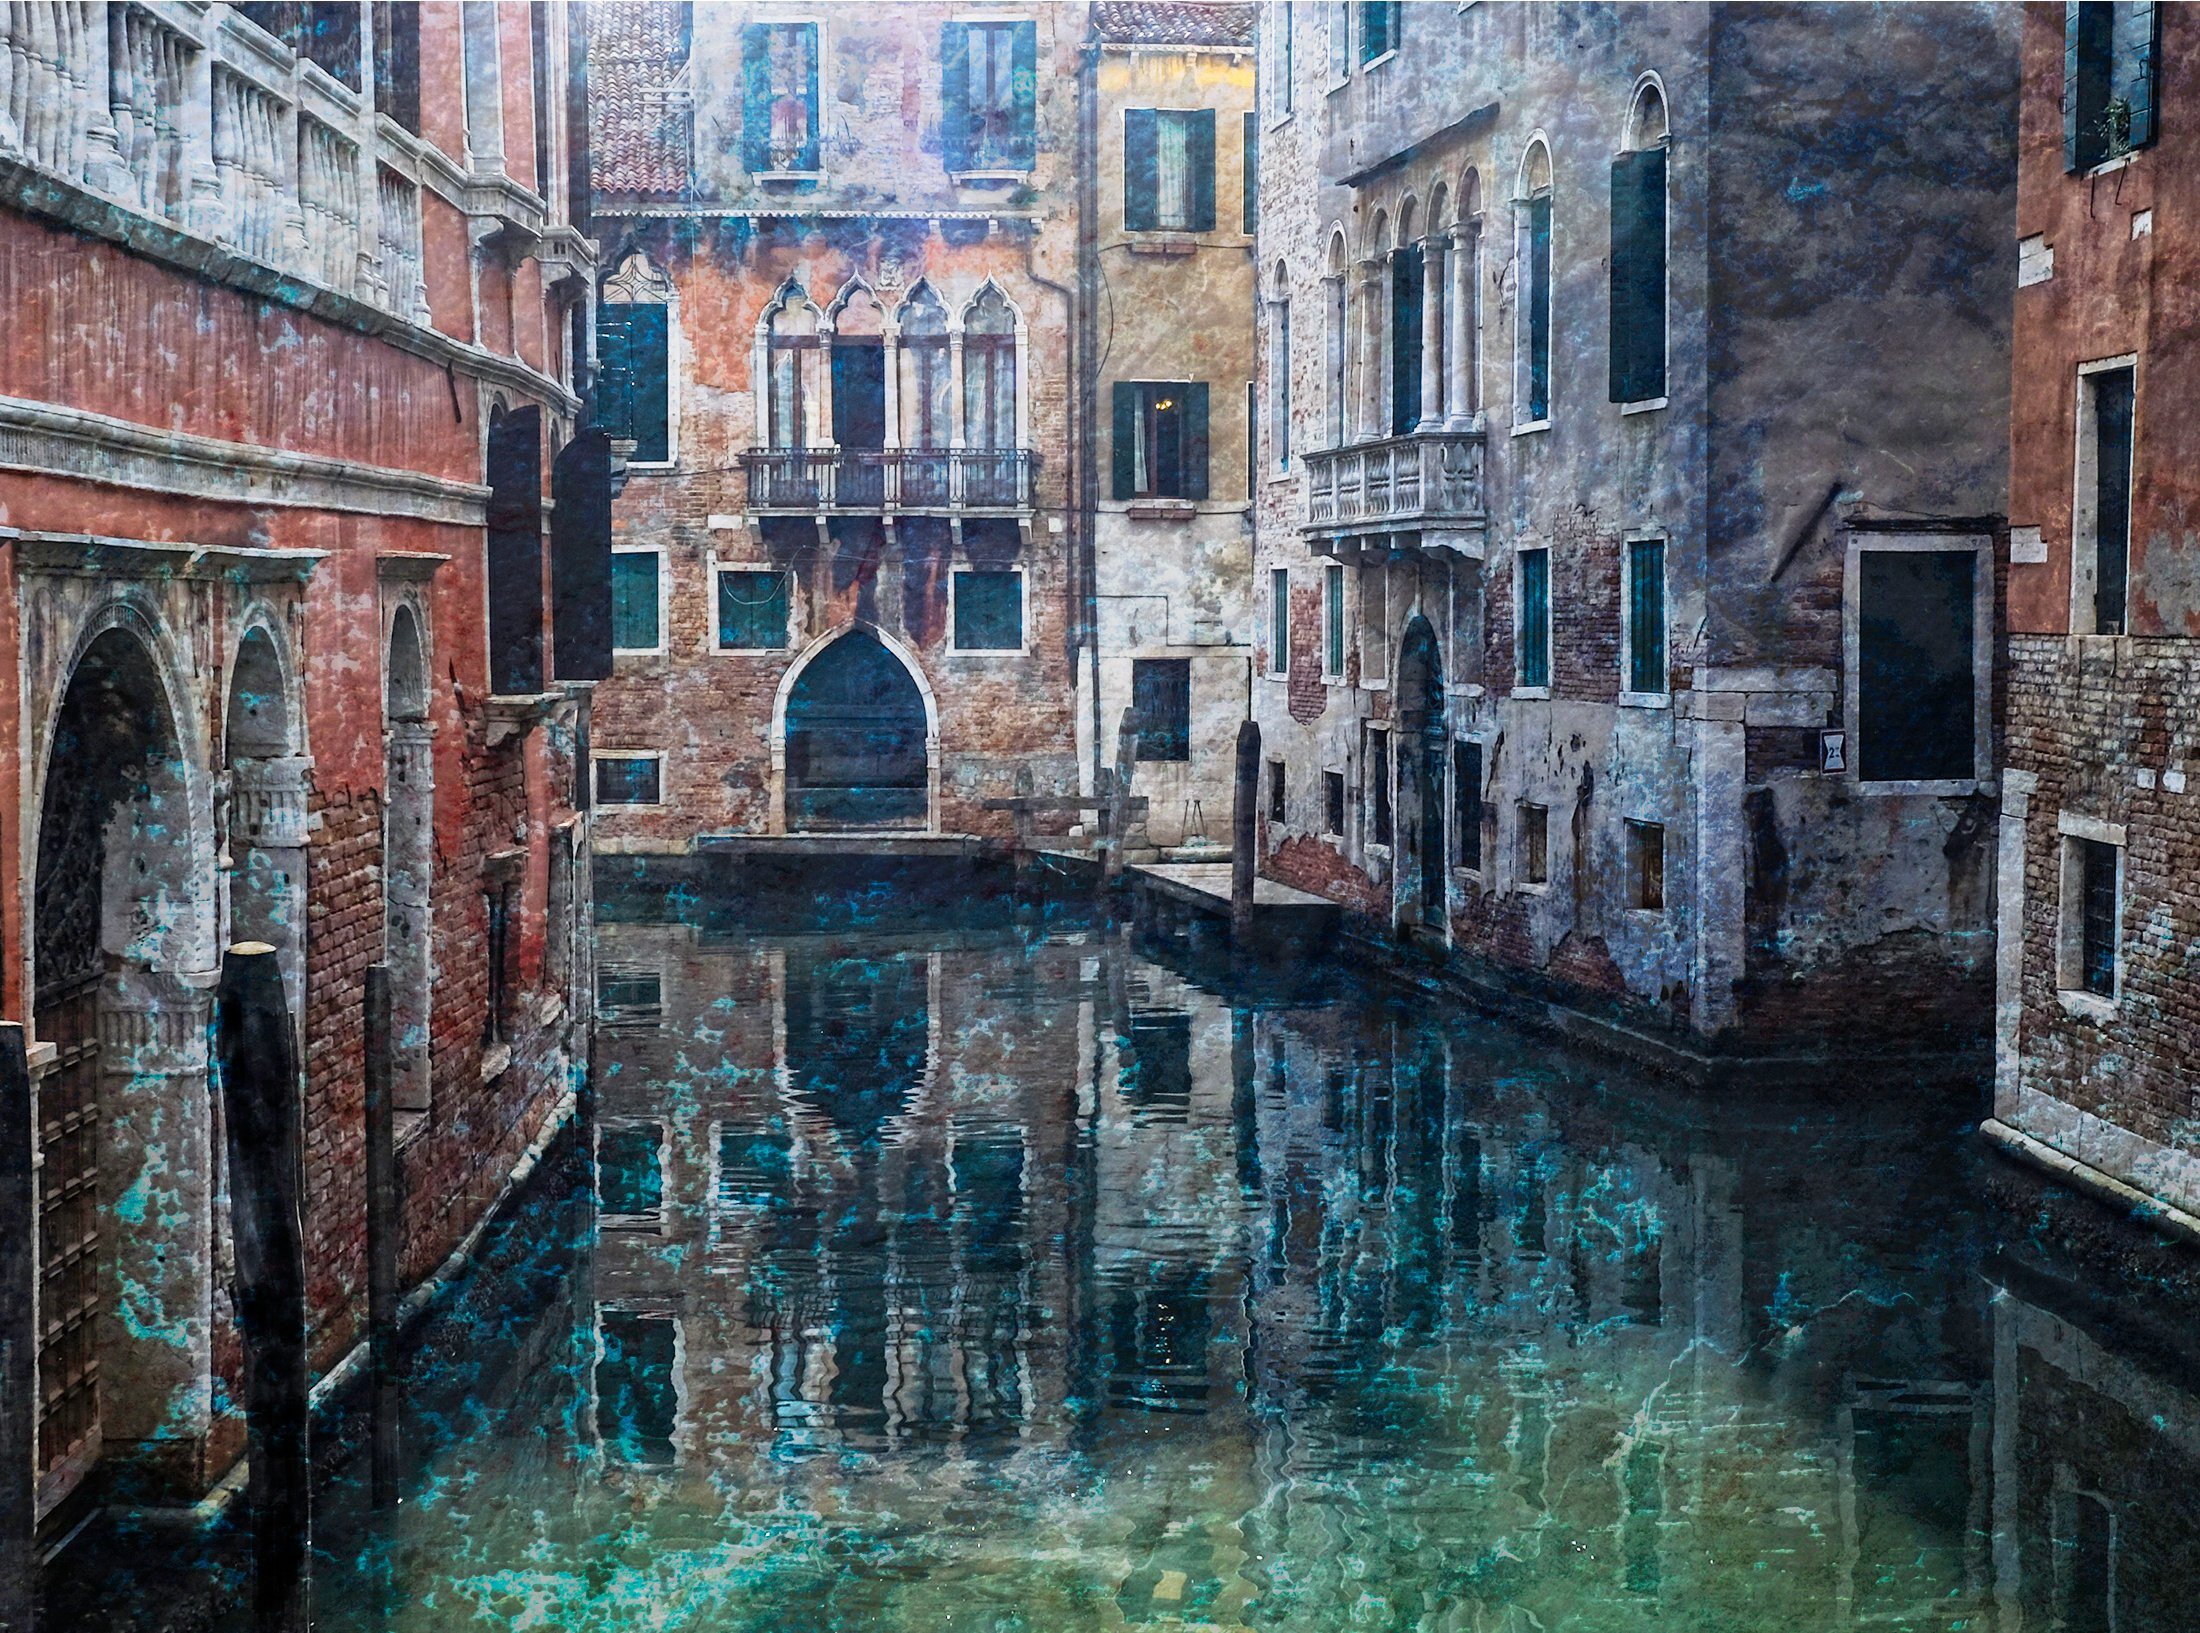 venice-venetian-crumbly-textures-architectural-lagoon-canal